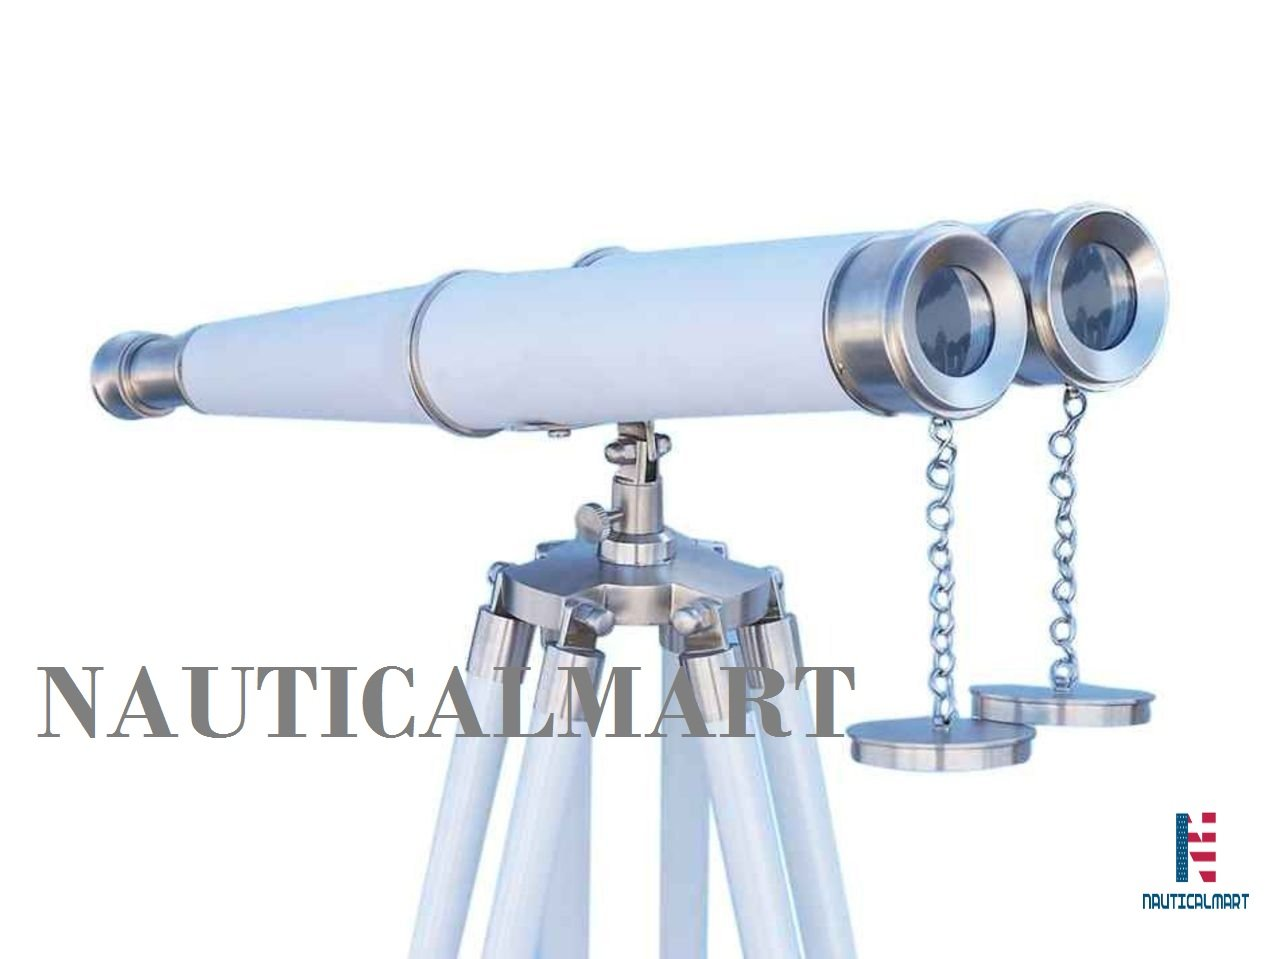 NAUTICALMART Floor Standing Admiral's with Decorative Binoculars 62'' Brushed Nickel/White Leather